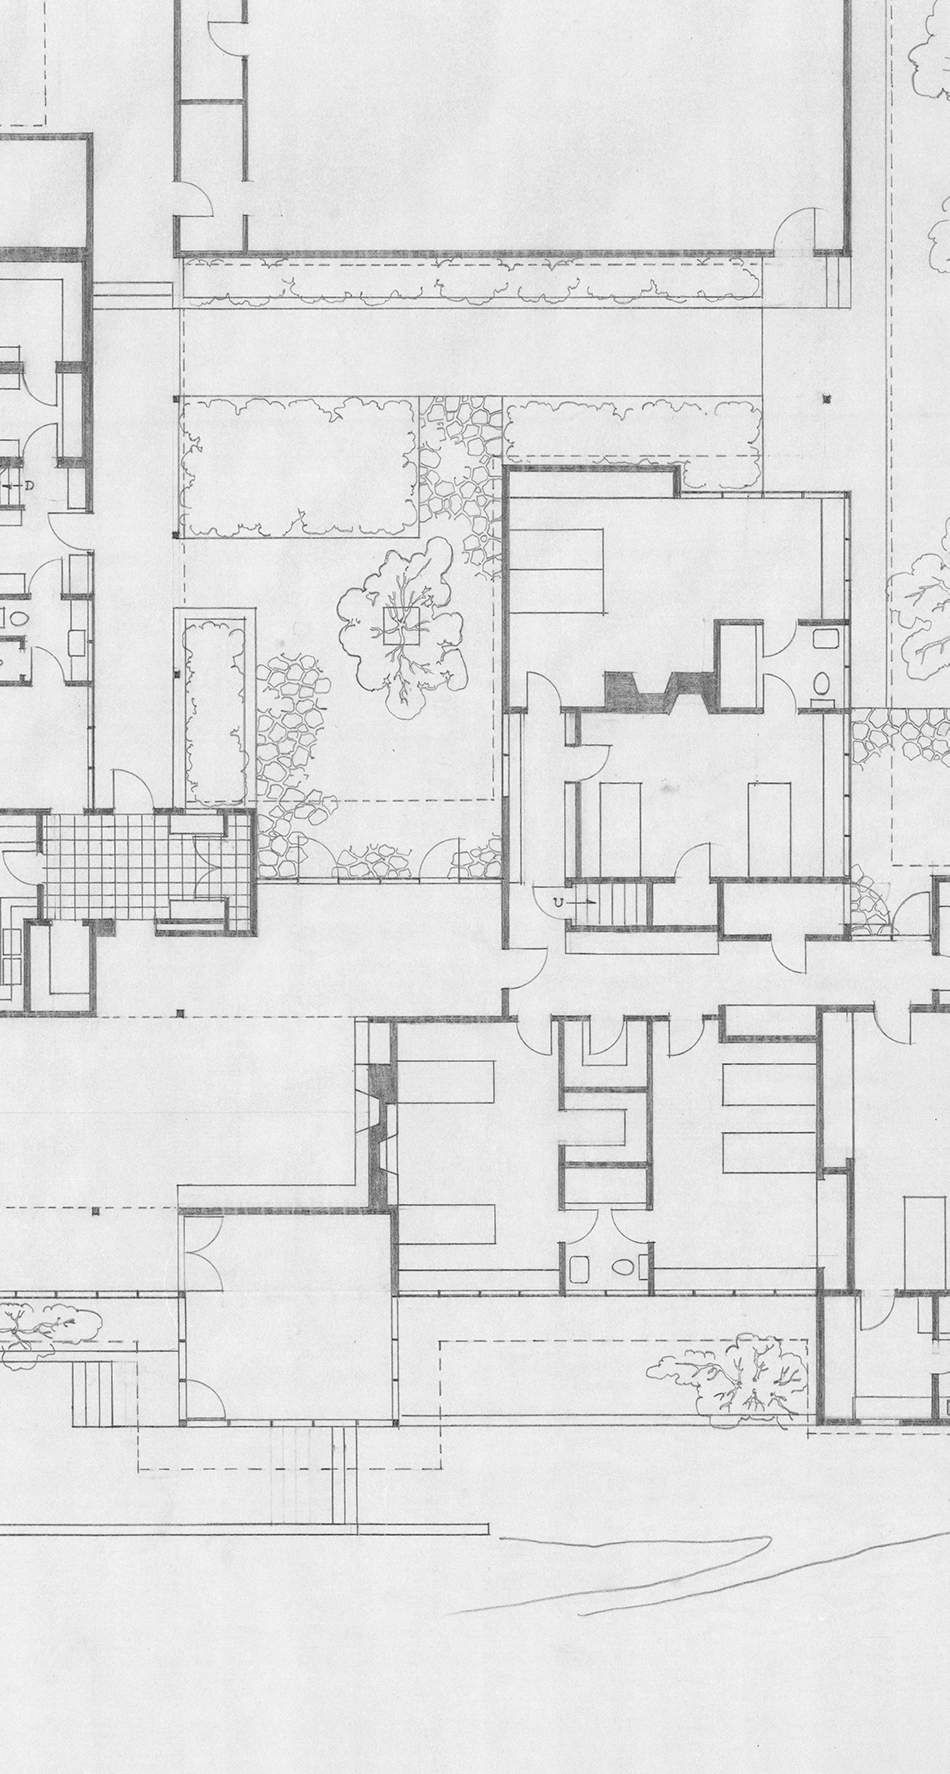 House and Garden Plan, John Yeon architectural drawings, 1934-1976